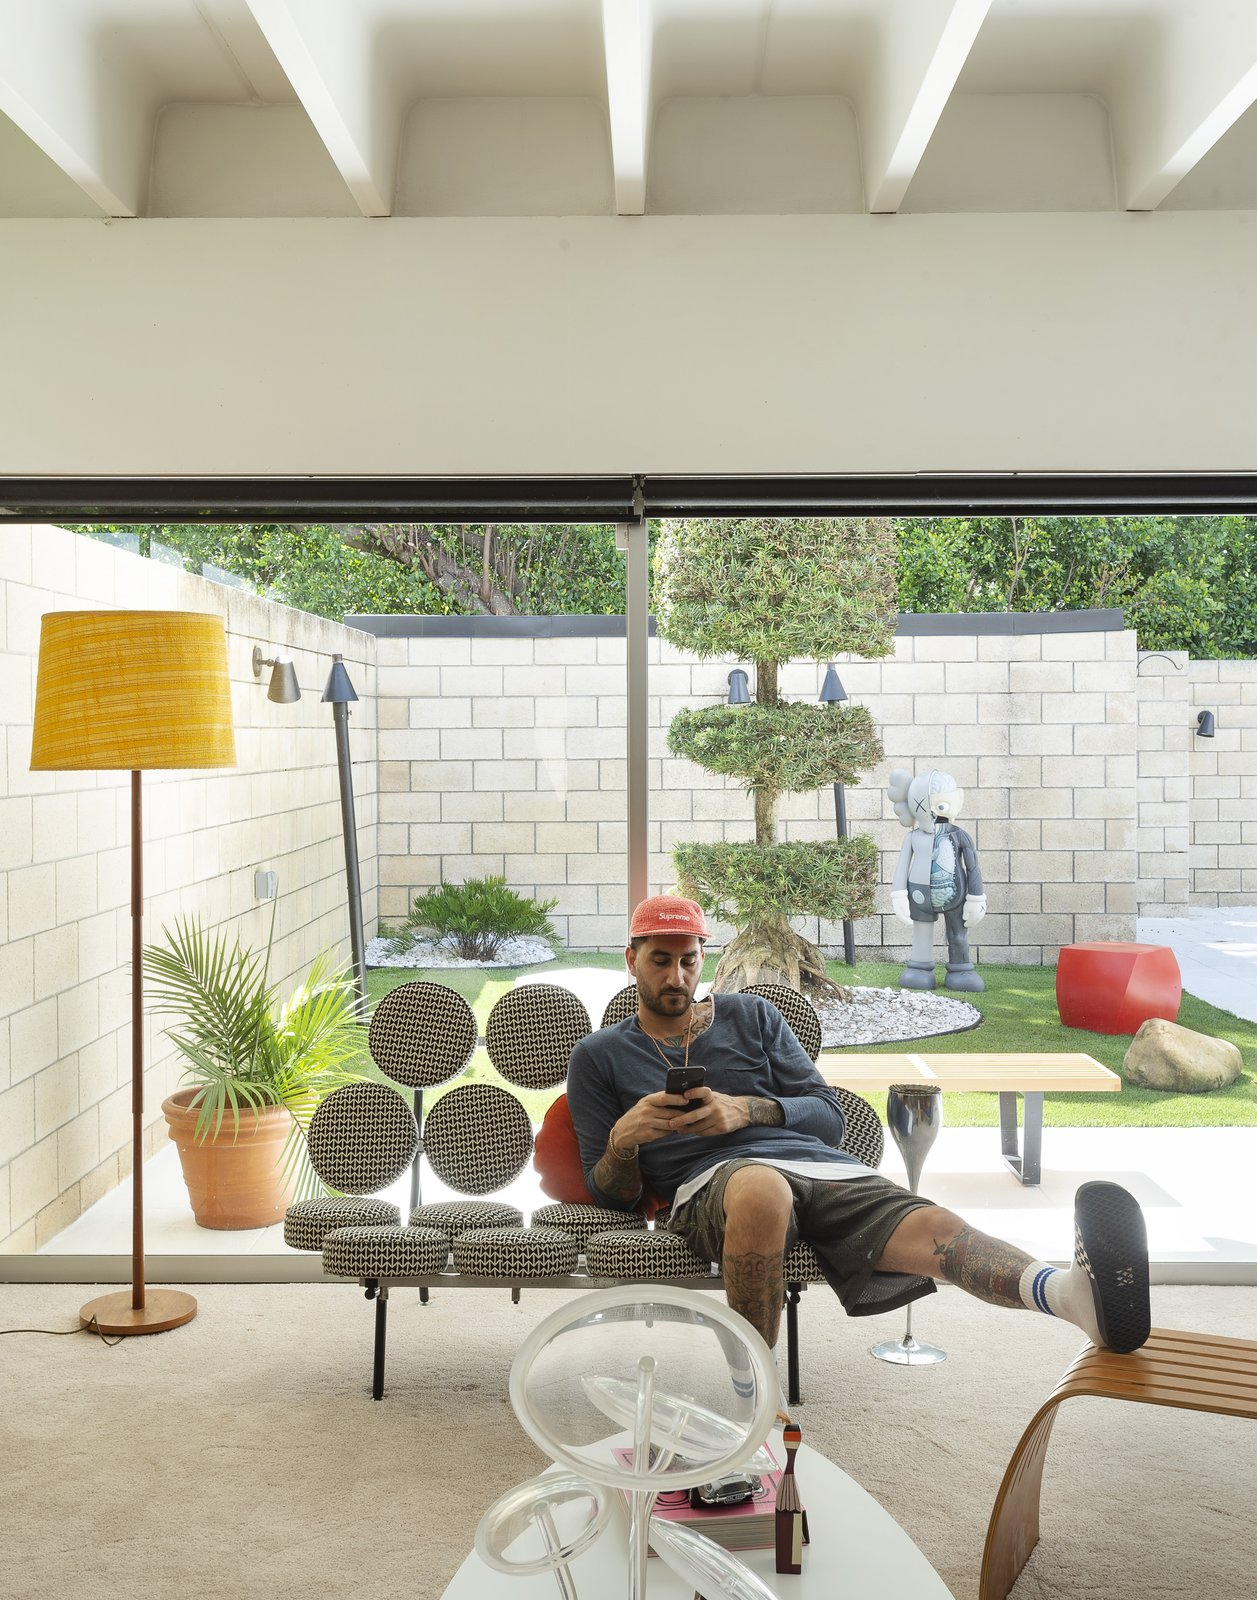 Living Room, Chair, Carpet Floor, Sofa, Coffee Tables, and Floor Lighting  The Ellison House from Pop Art, Street Art, and Space-Age Furniture Collide at a Painter's Midcentury Ranch Home in Florida